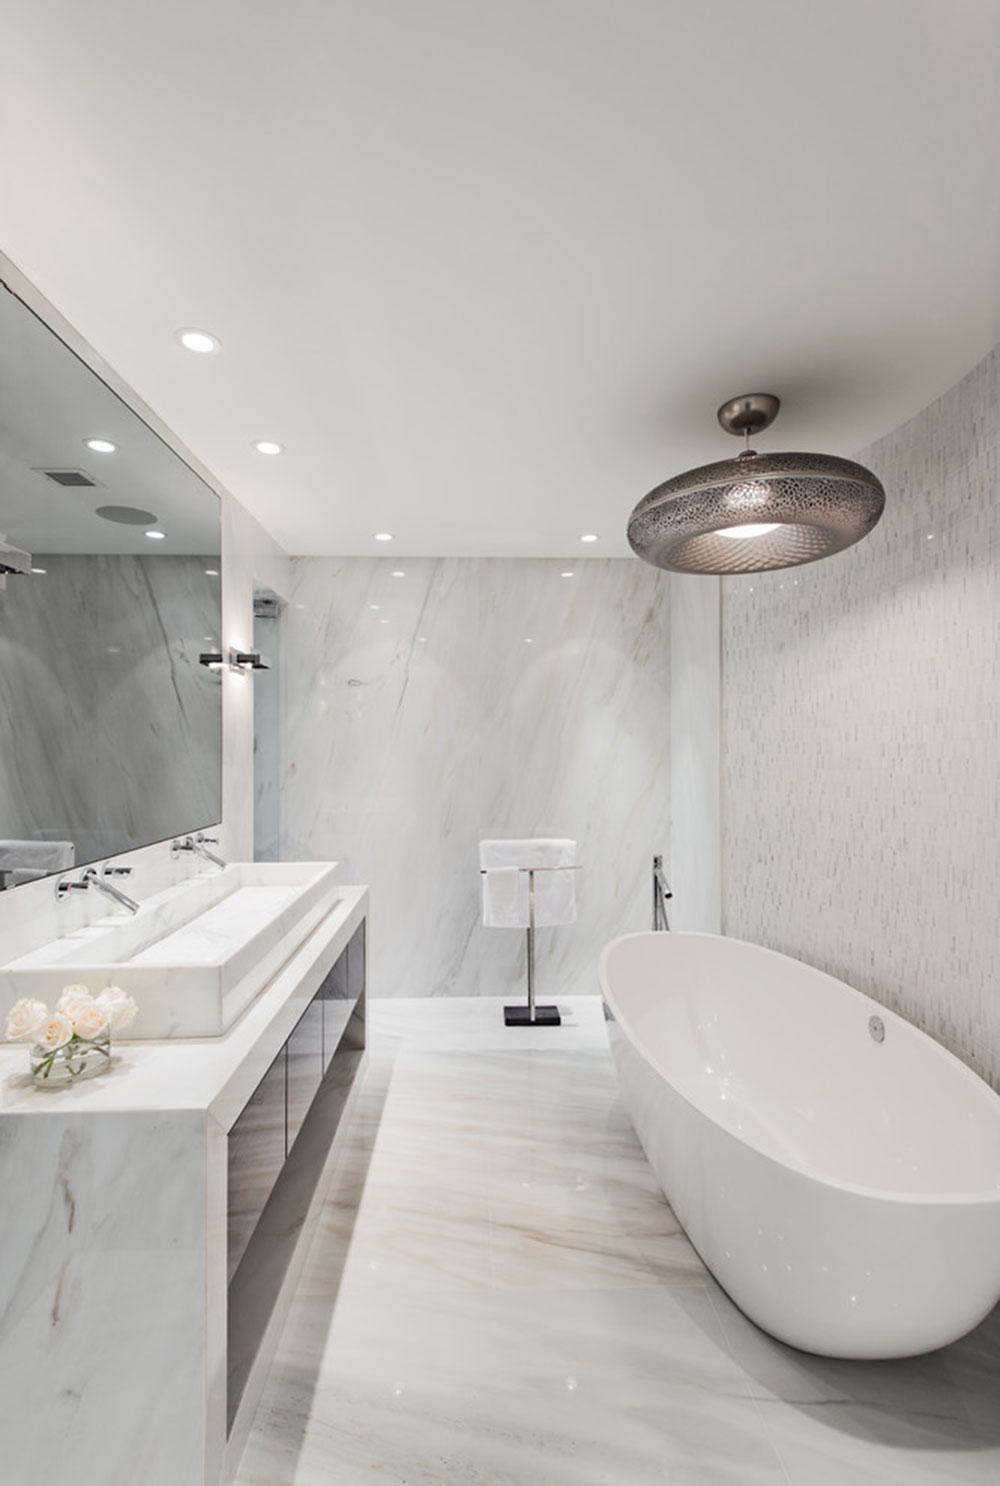 Merveilleux Warm Houses With These Marble Bathroom Design Ideas11 Beautify